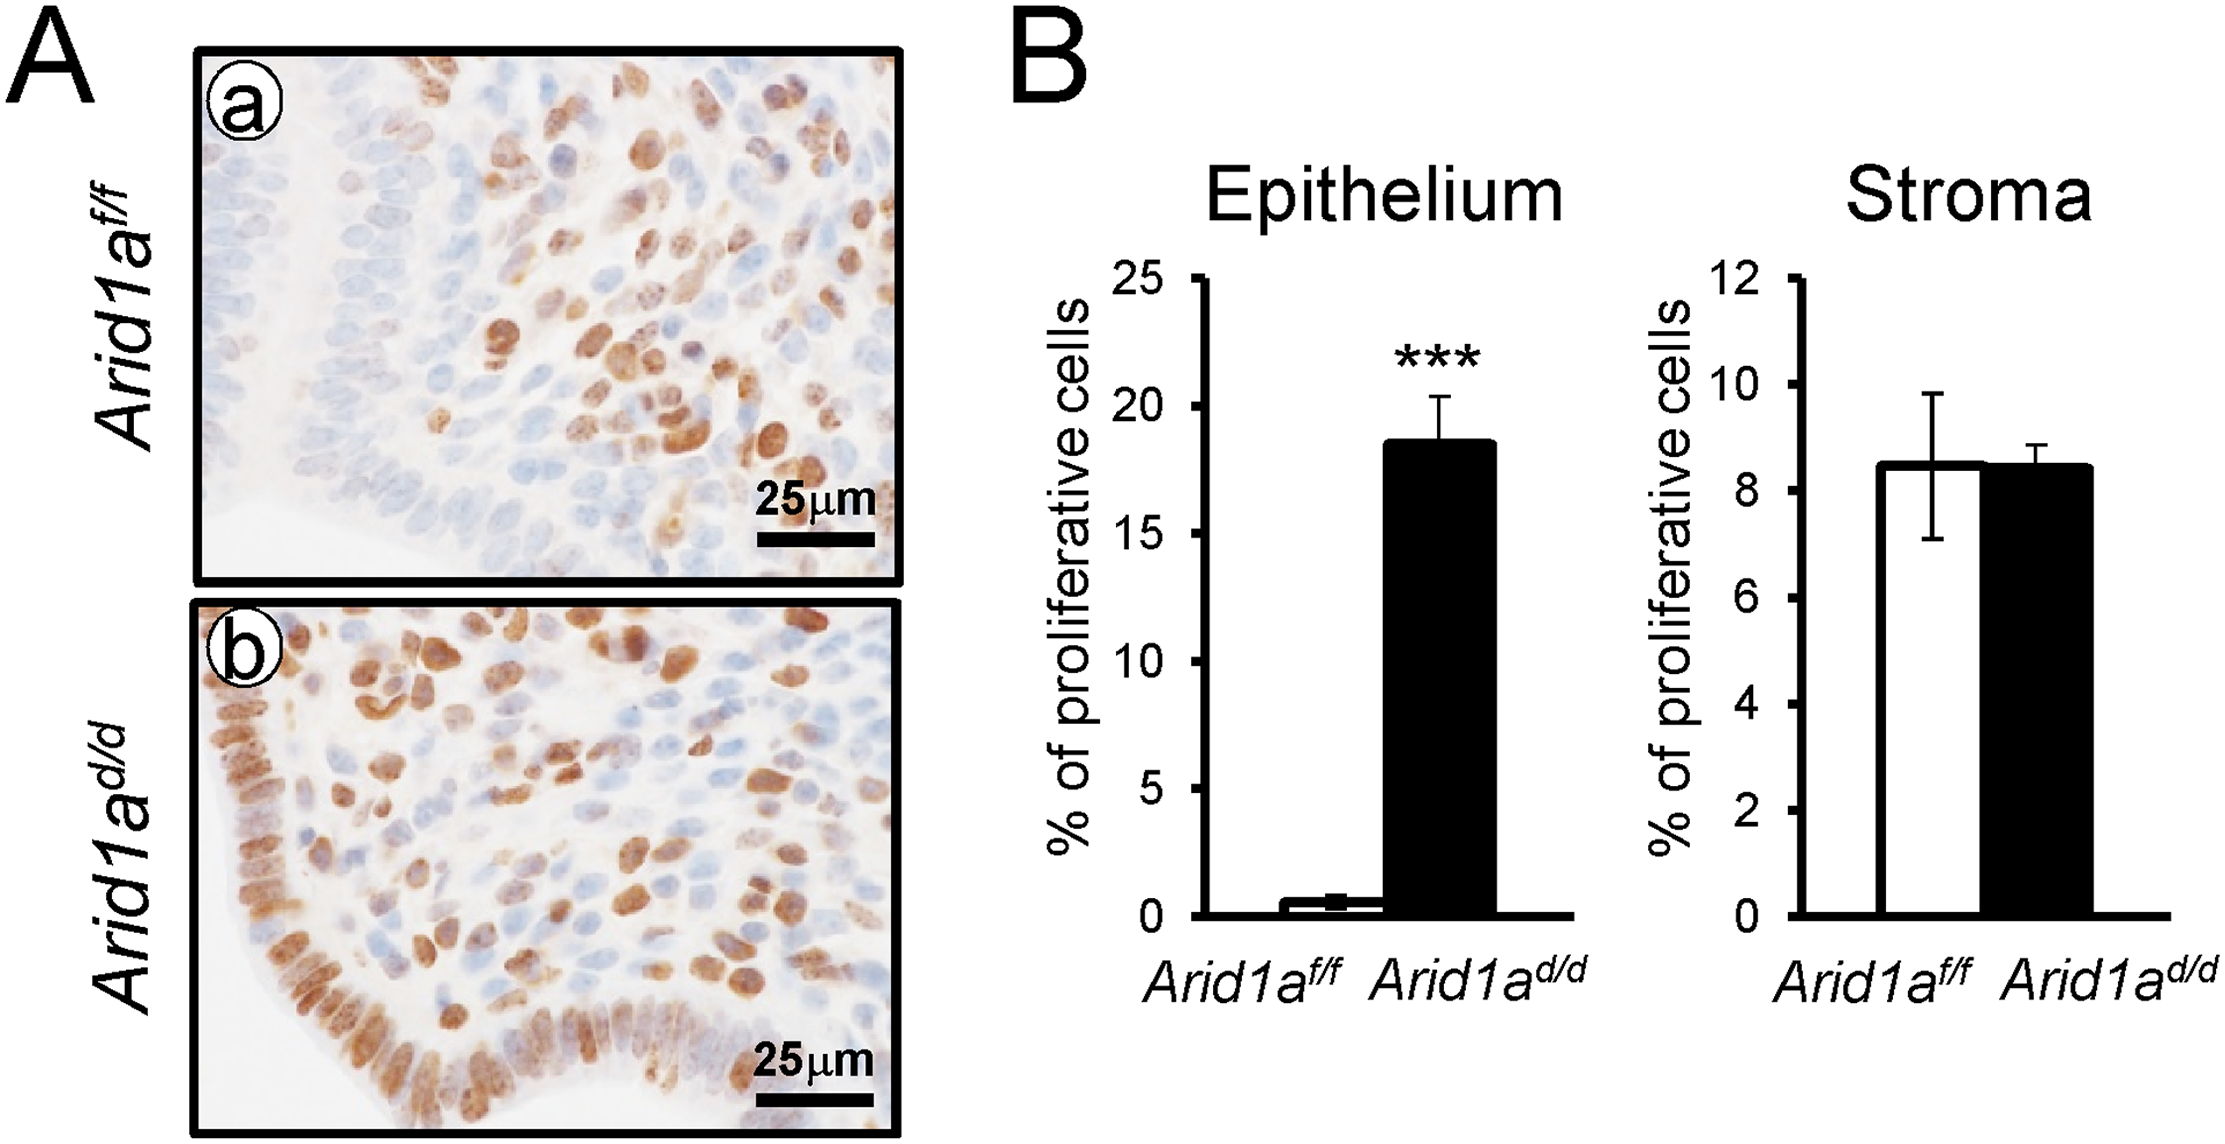 The epithelial proliferation is highly increased in <i>Arid1a</i><sup><i>d/d</i></sup> mice.